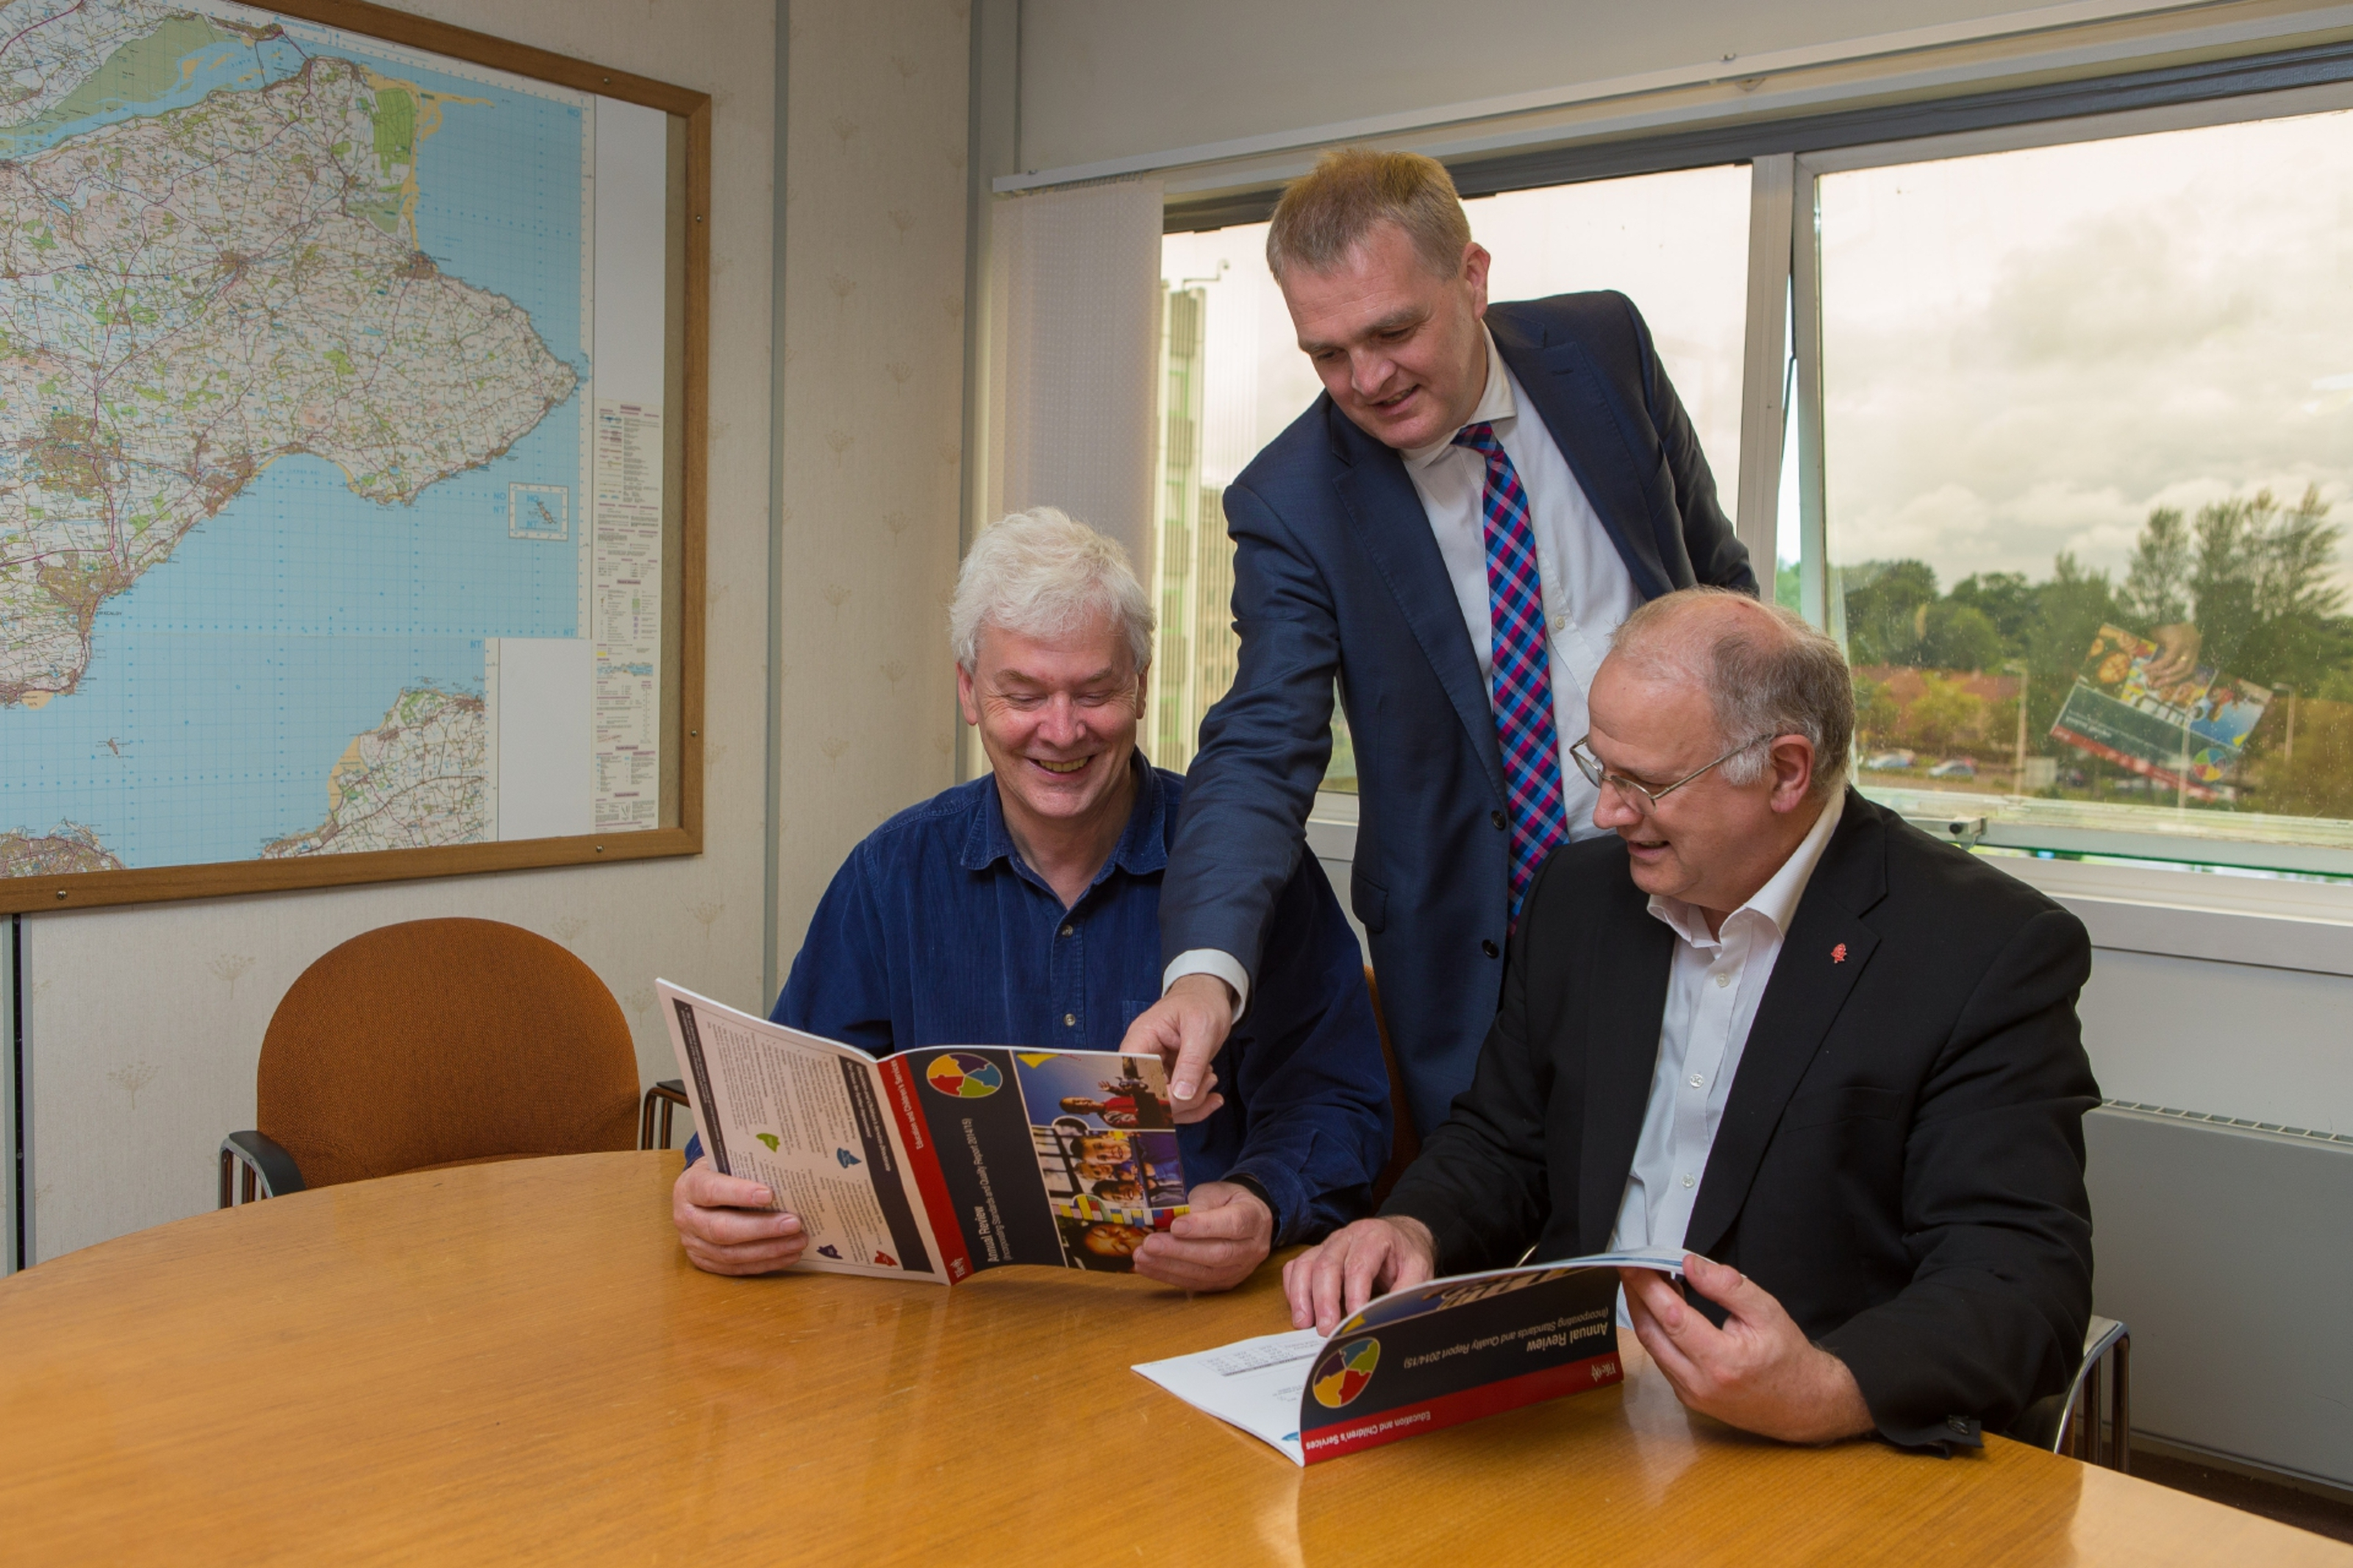 Fife Council's executive director of childrens services, Craig Munro (standing), and children's services spokesman Councillor Bryan Poole (left) along with leader of FIfe Council Cllr David Ross (right).